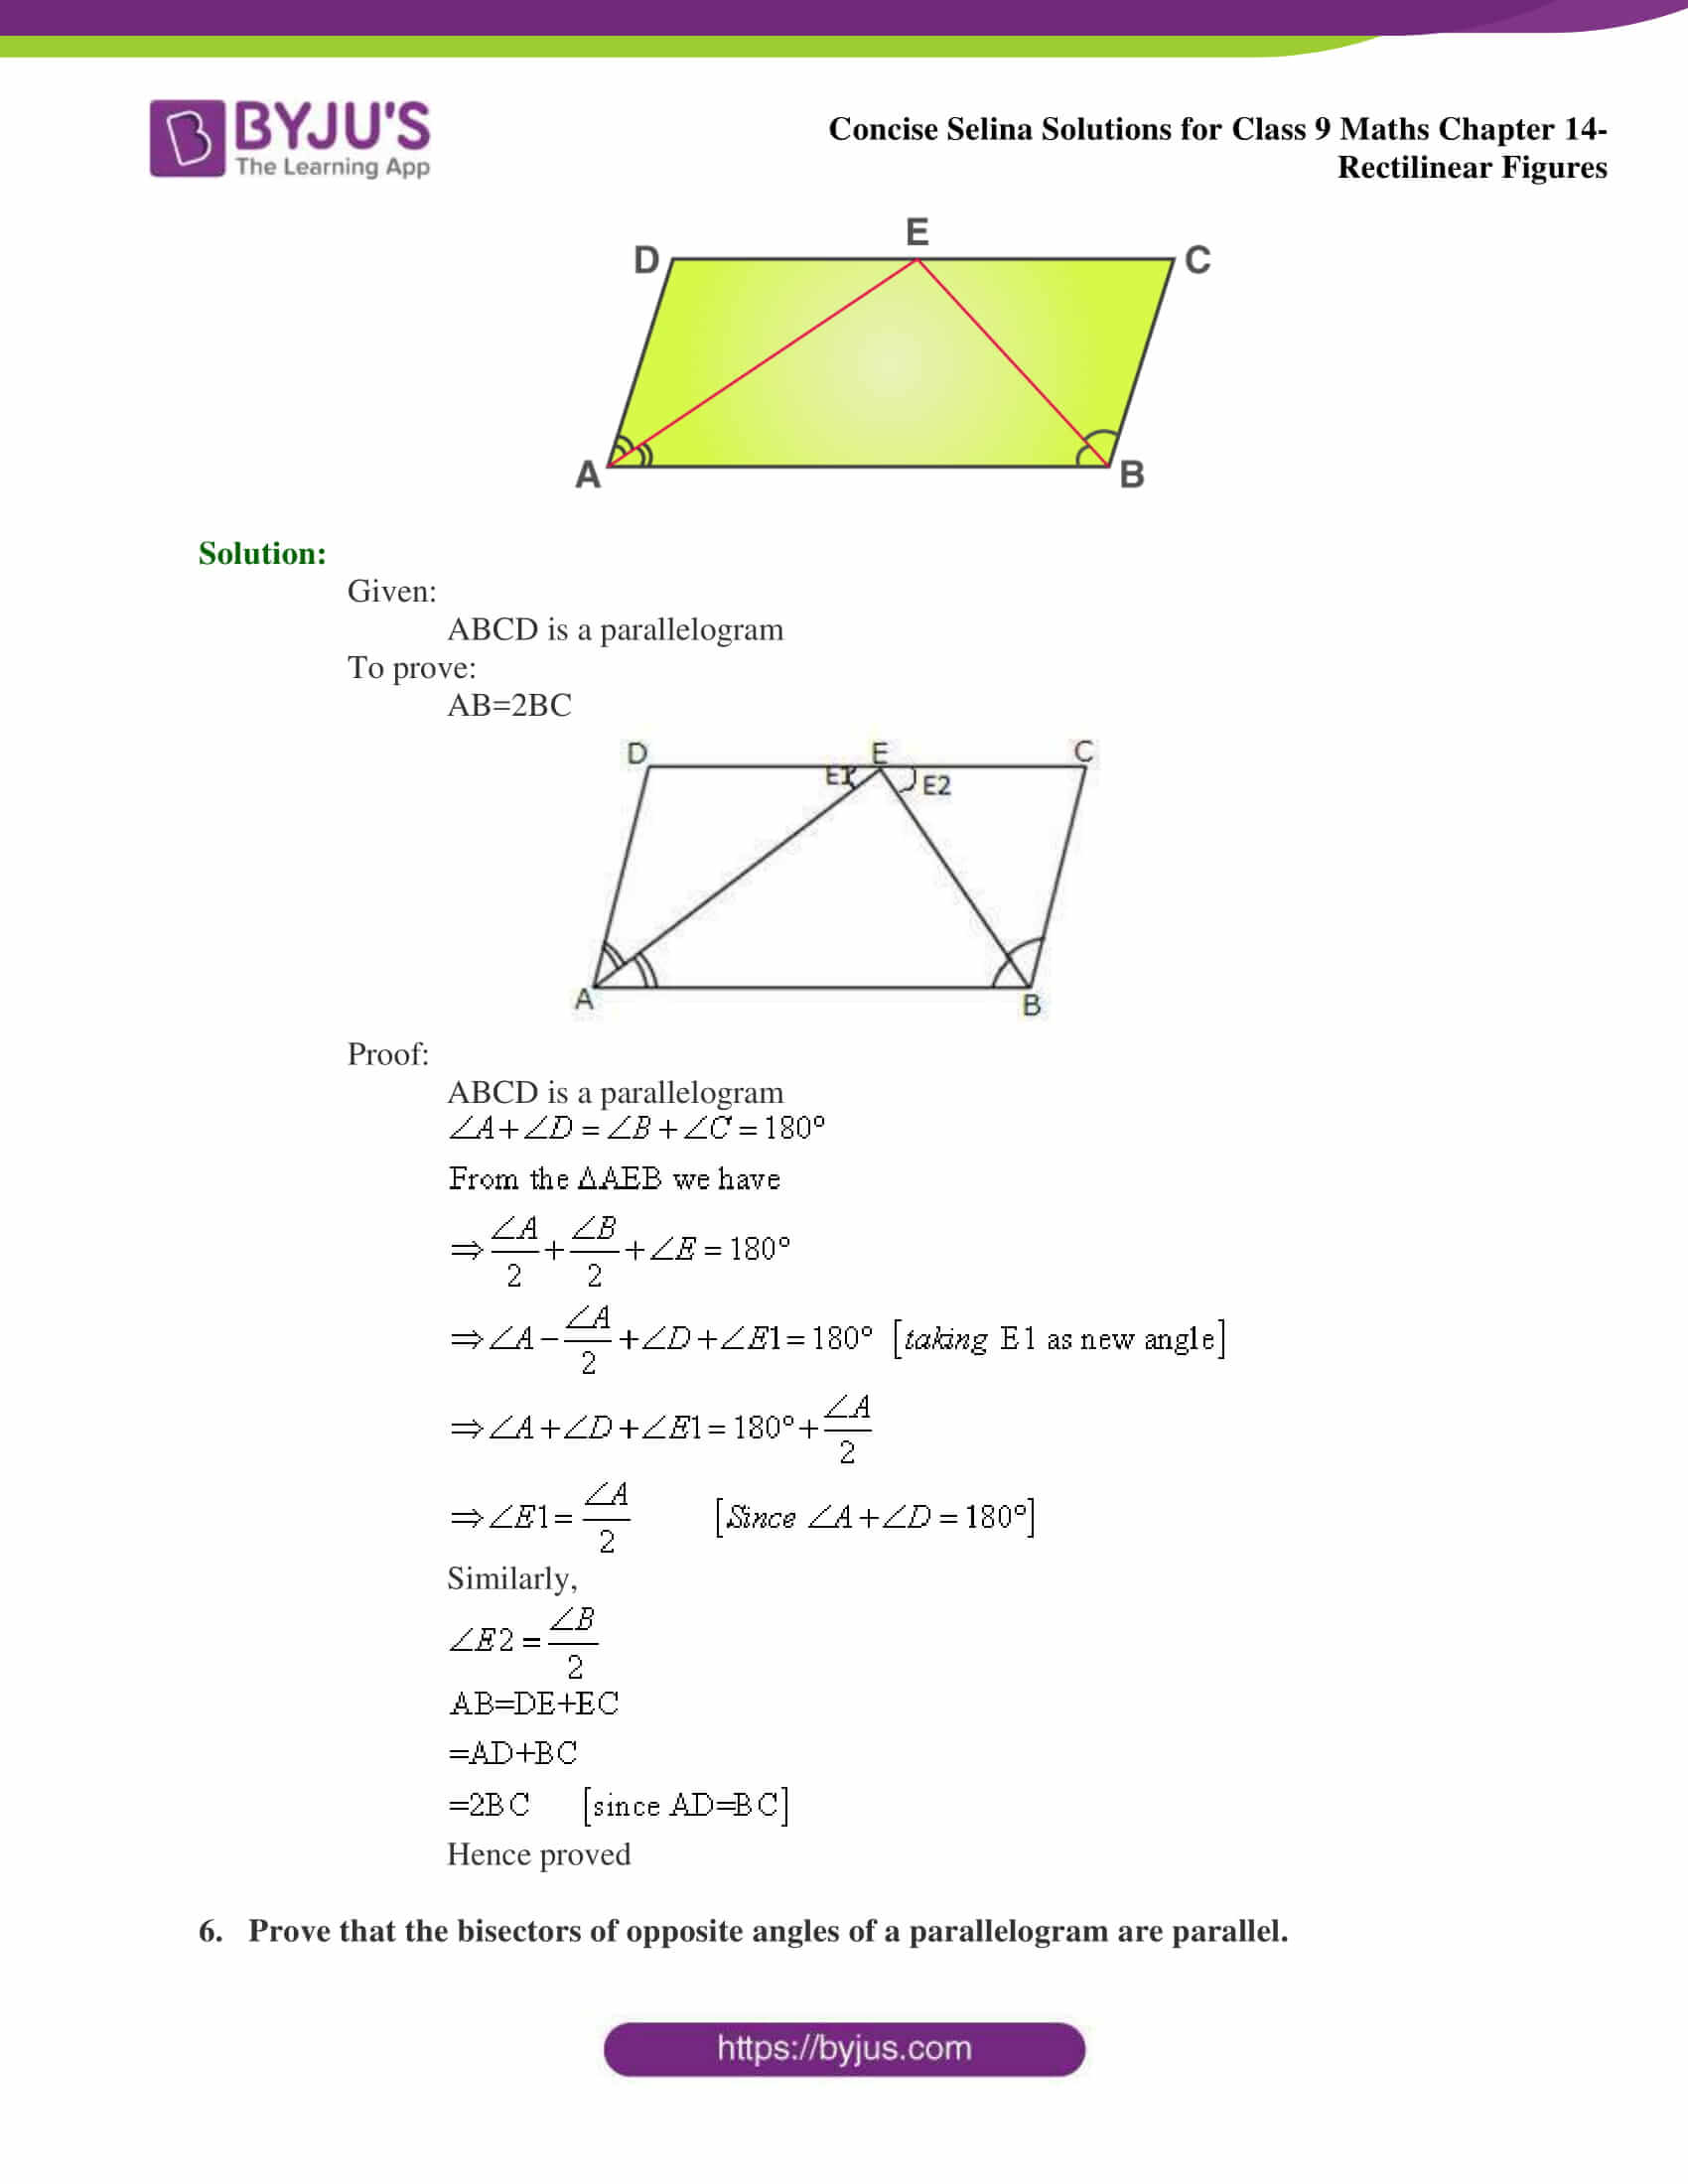 selina Solutions for Class 9 Maths Chapter 14 part 21